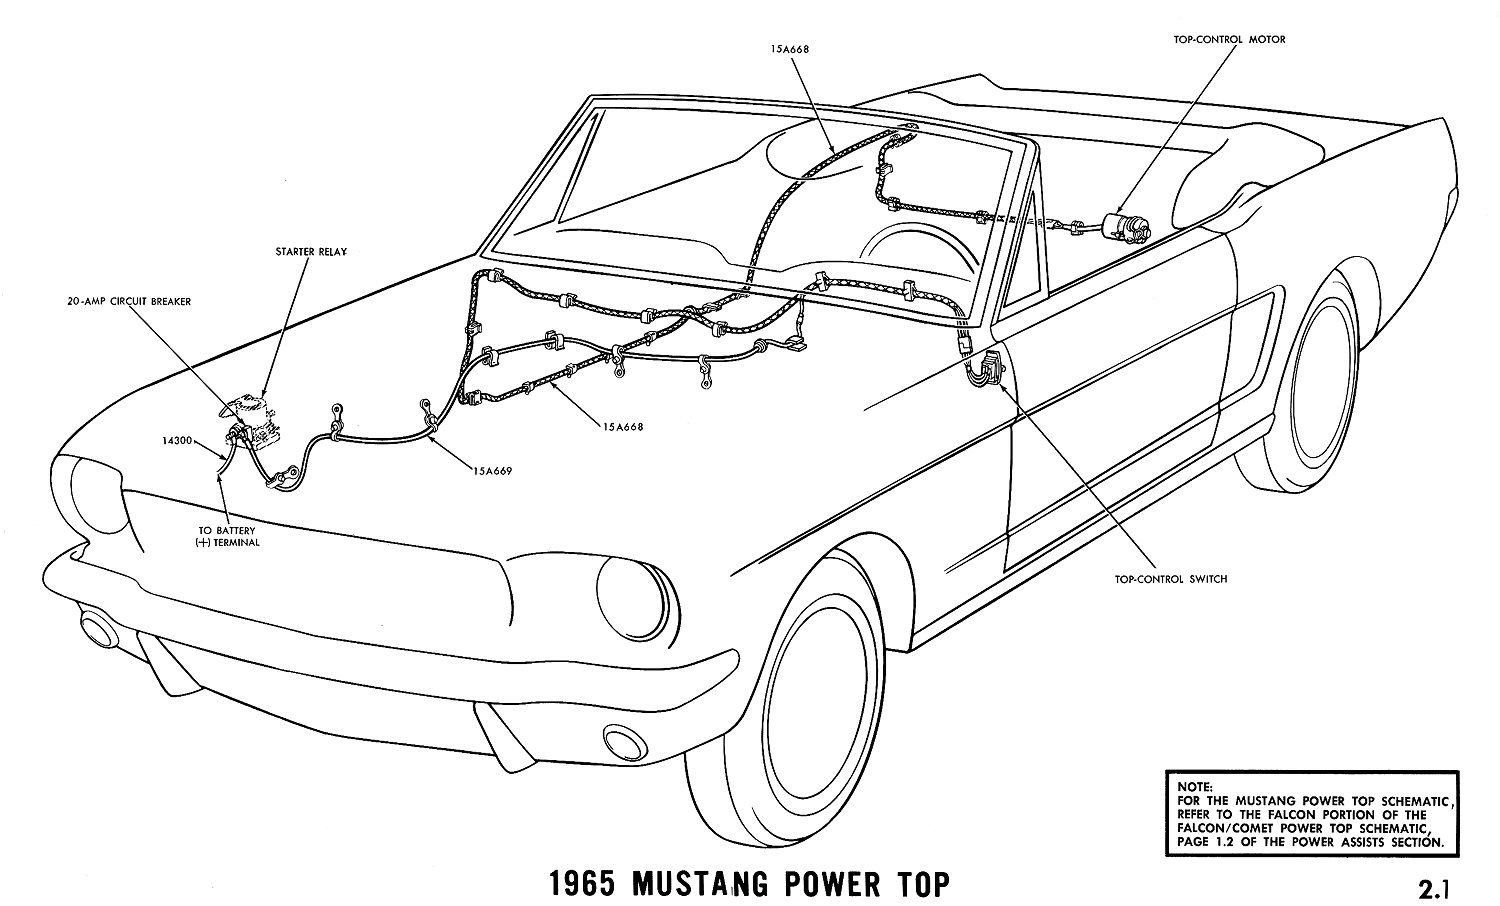 1965j 1965 mustang wiring diagrams average joe restoration 1969 mustang alternator wiring diagram at n-0.co